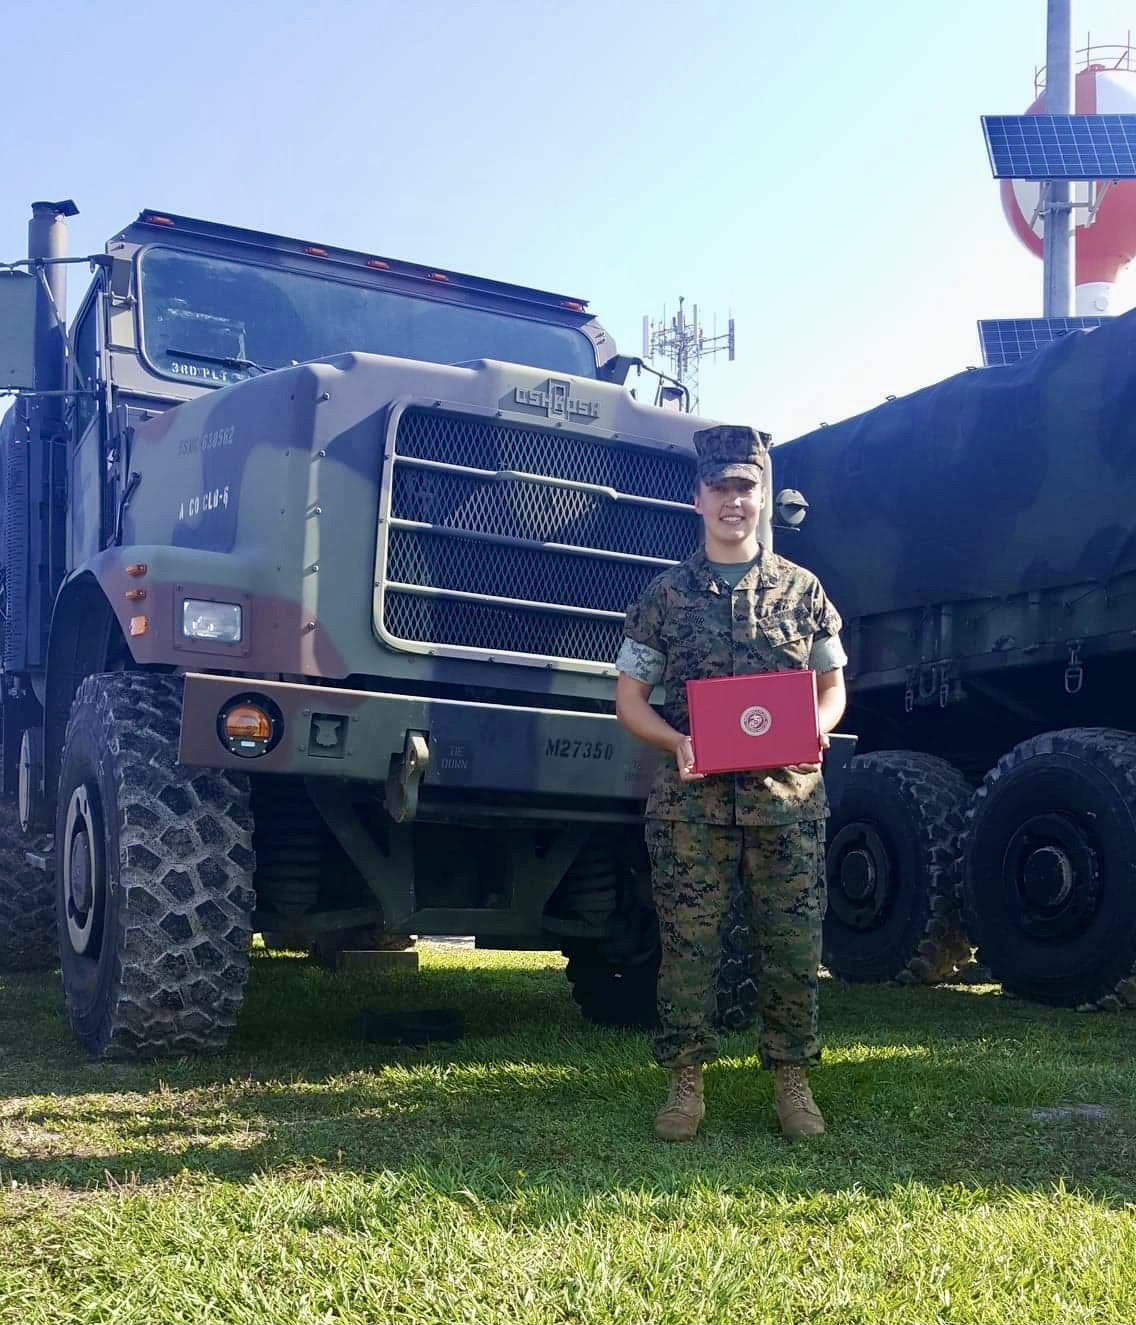 Brieann Jones poses in front of a military vehicle and holds an award.